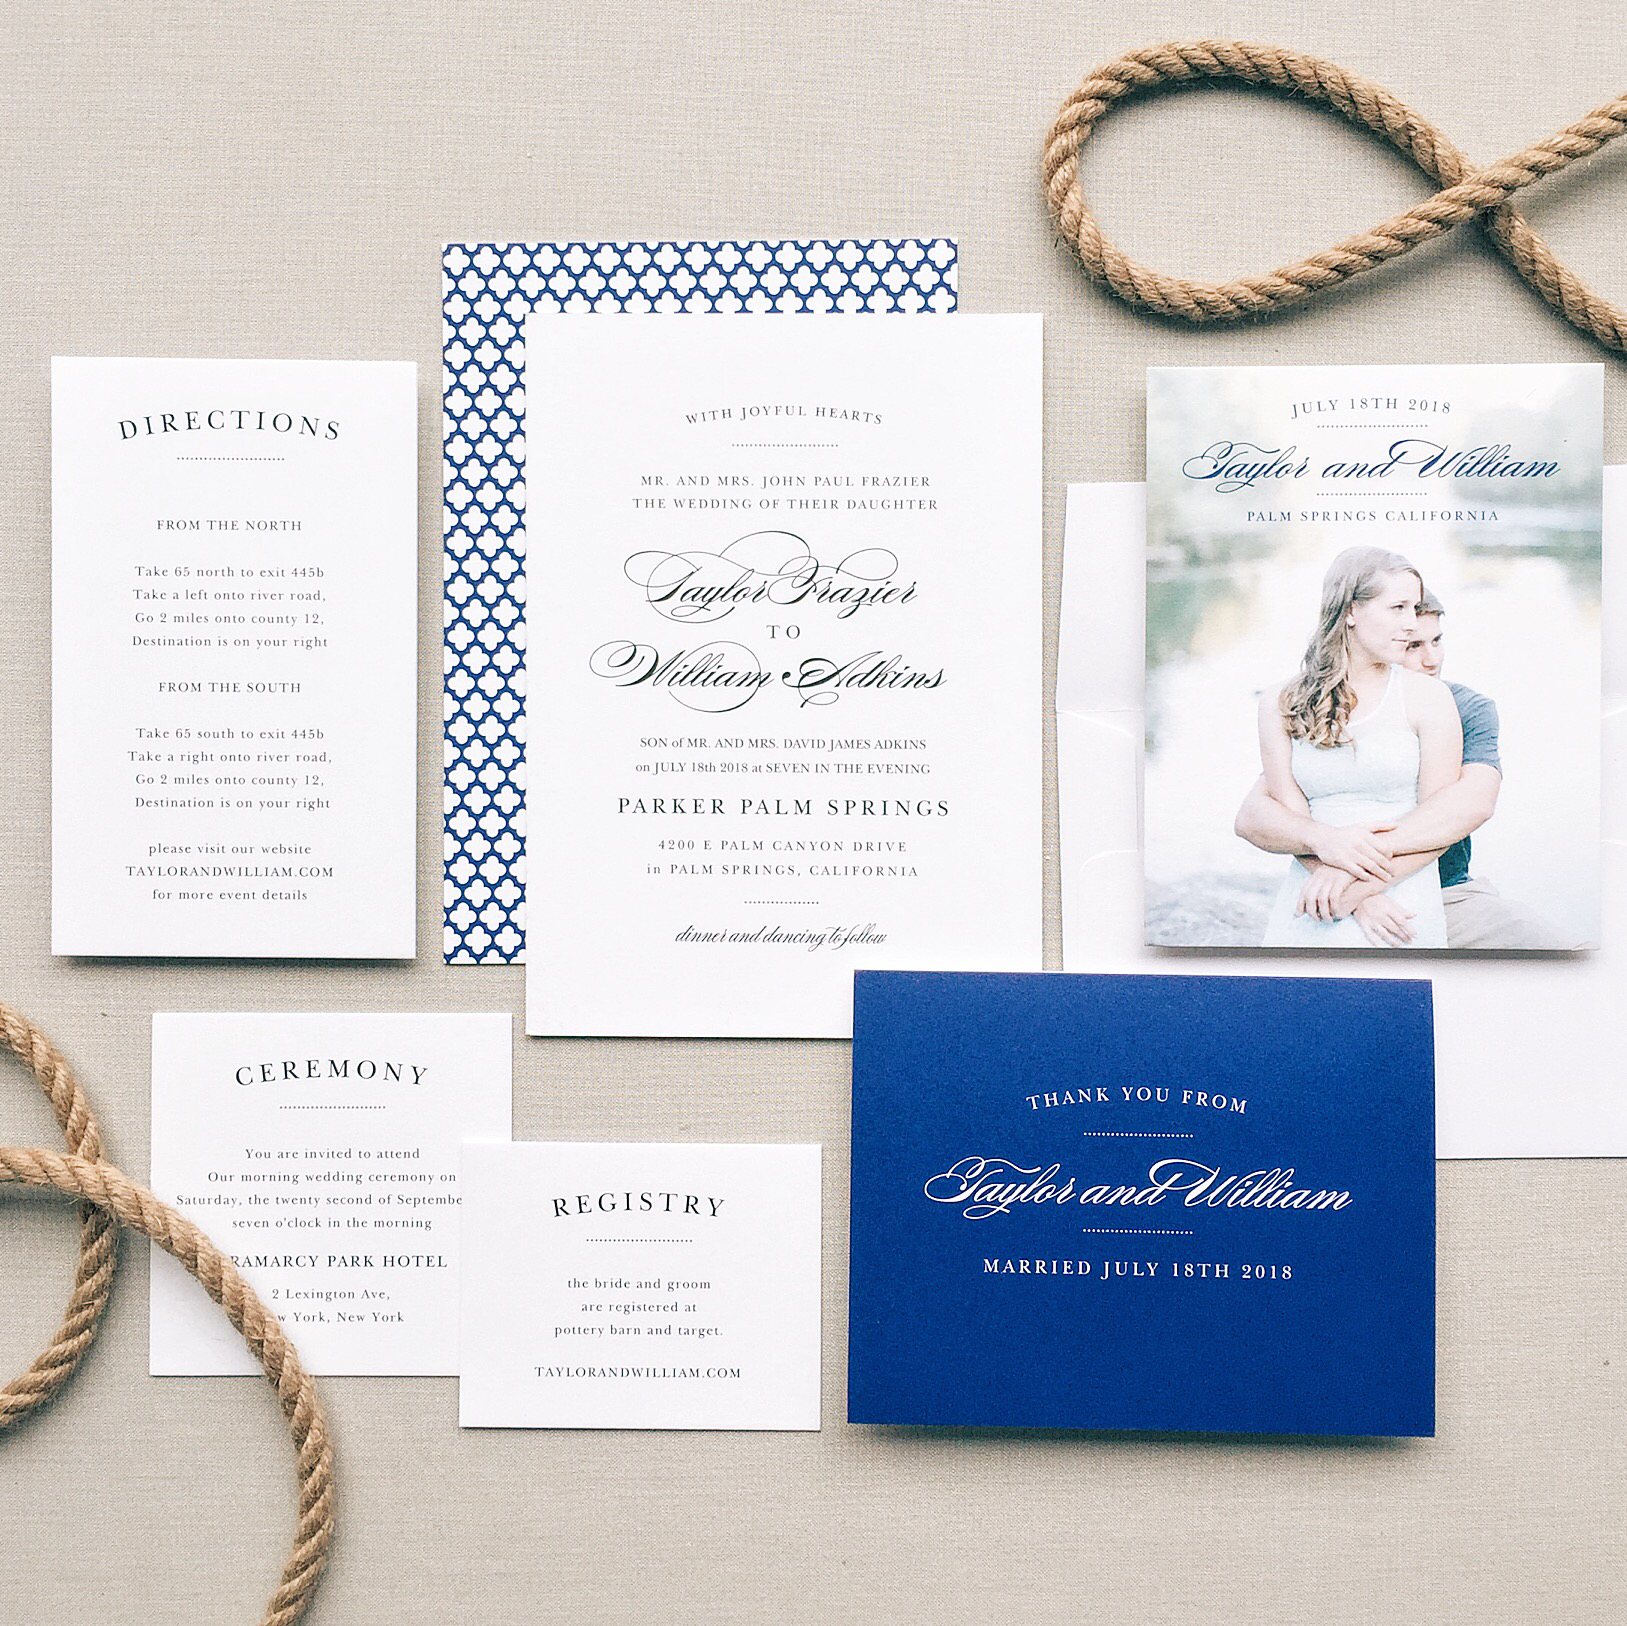 Design beautiful, unique wedding invitations stress-free